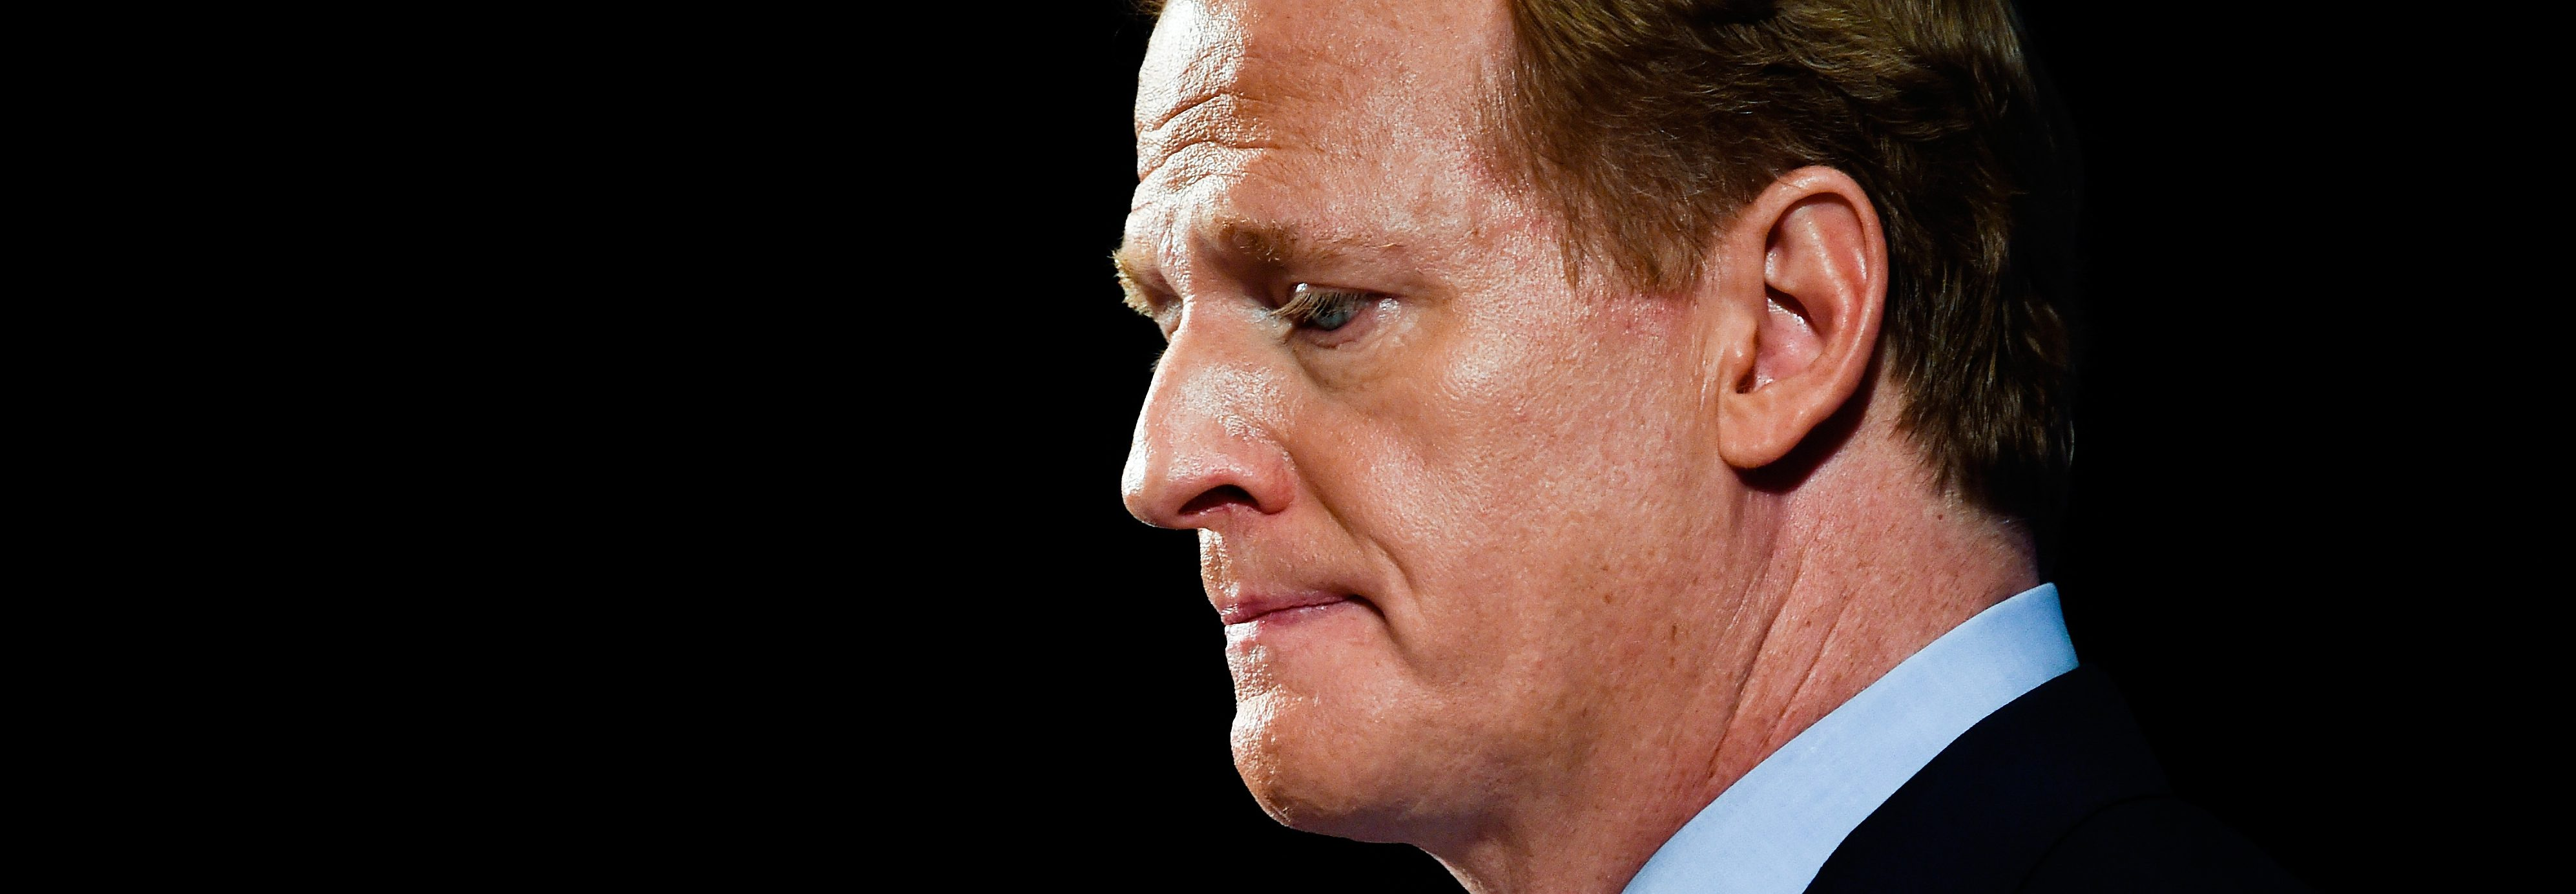 Here's What Players Think of the NFL Commissioner's Contract